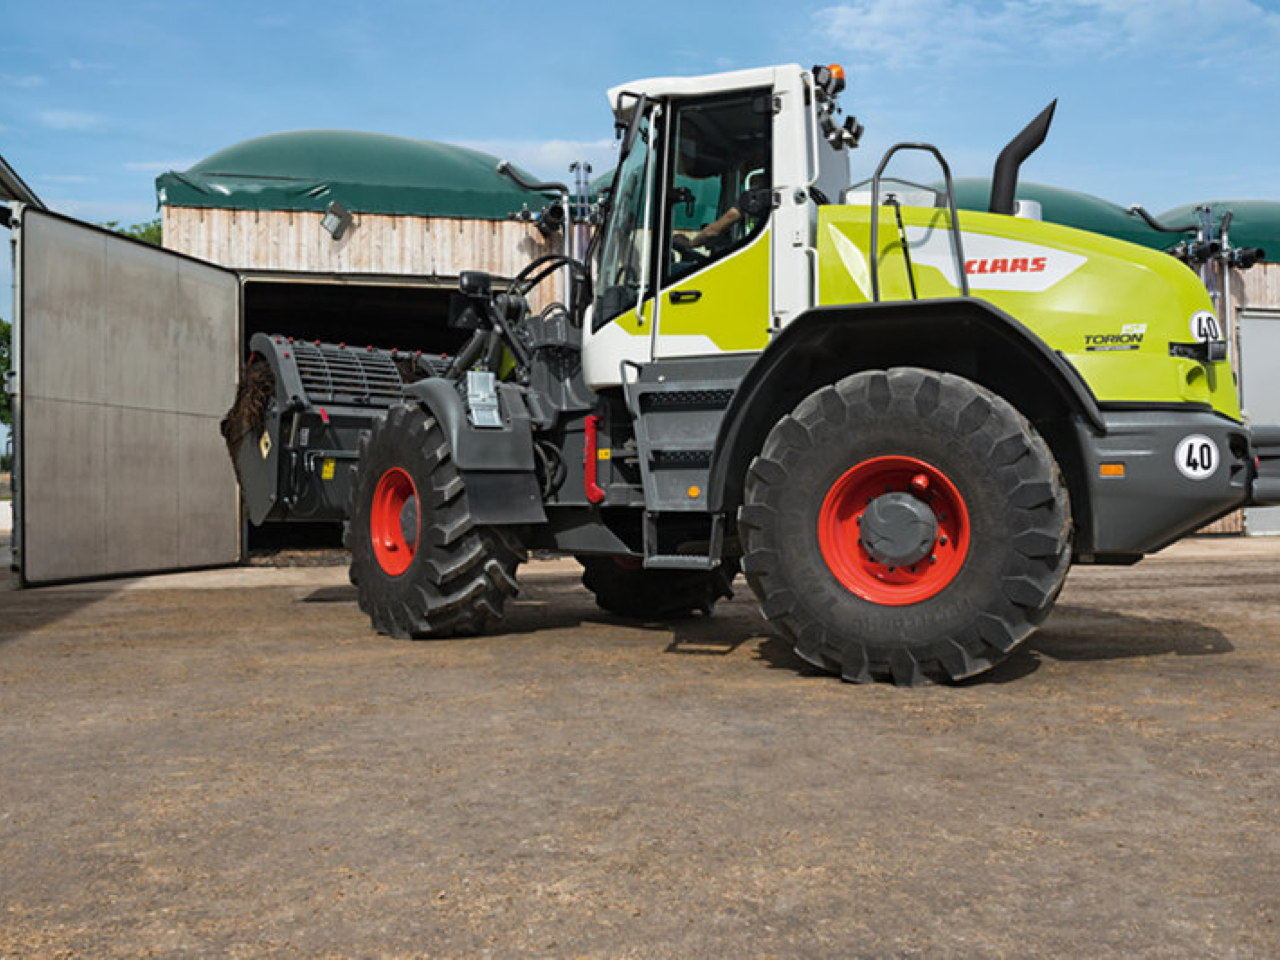 Claas Torion 1914-1177 Torion 1511